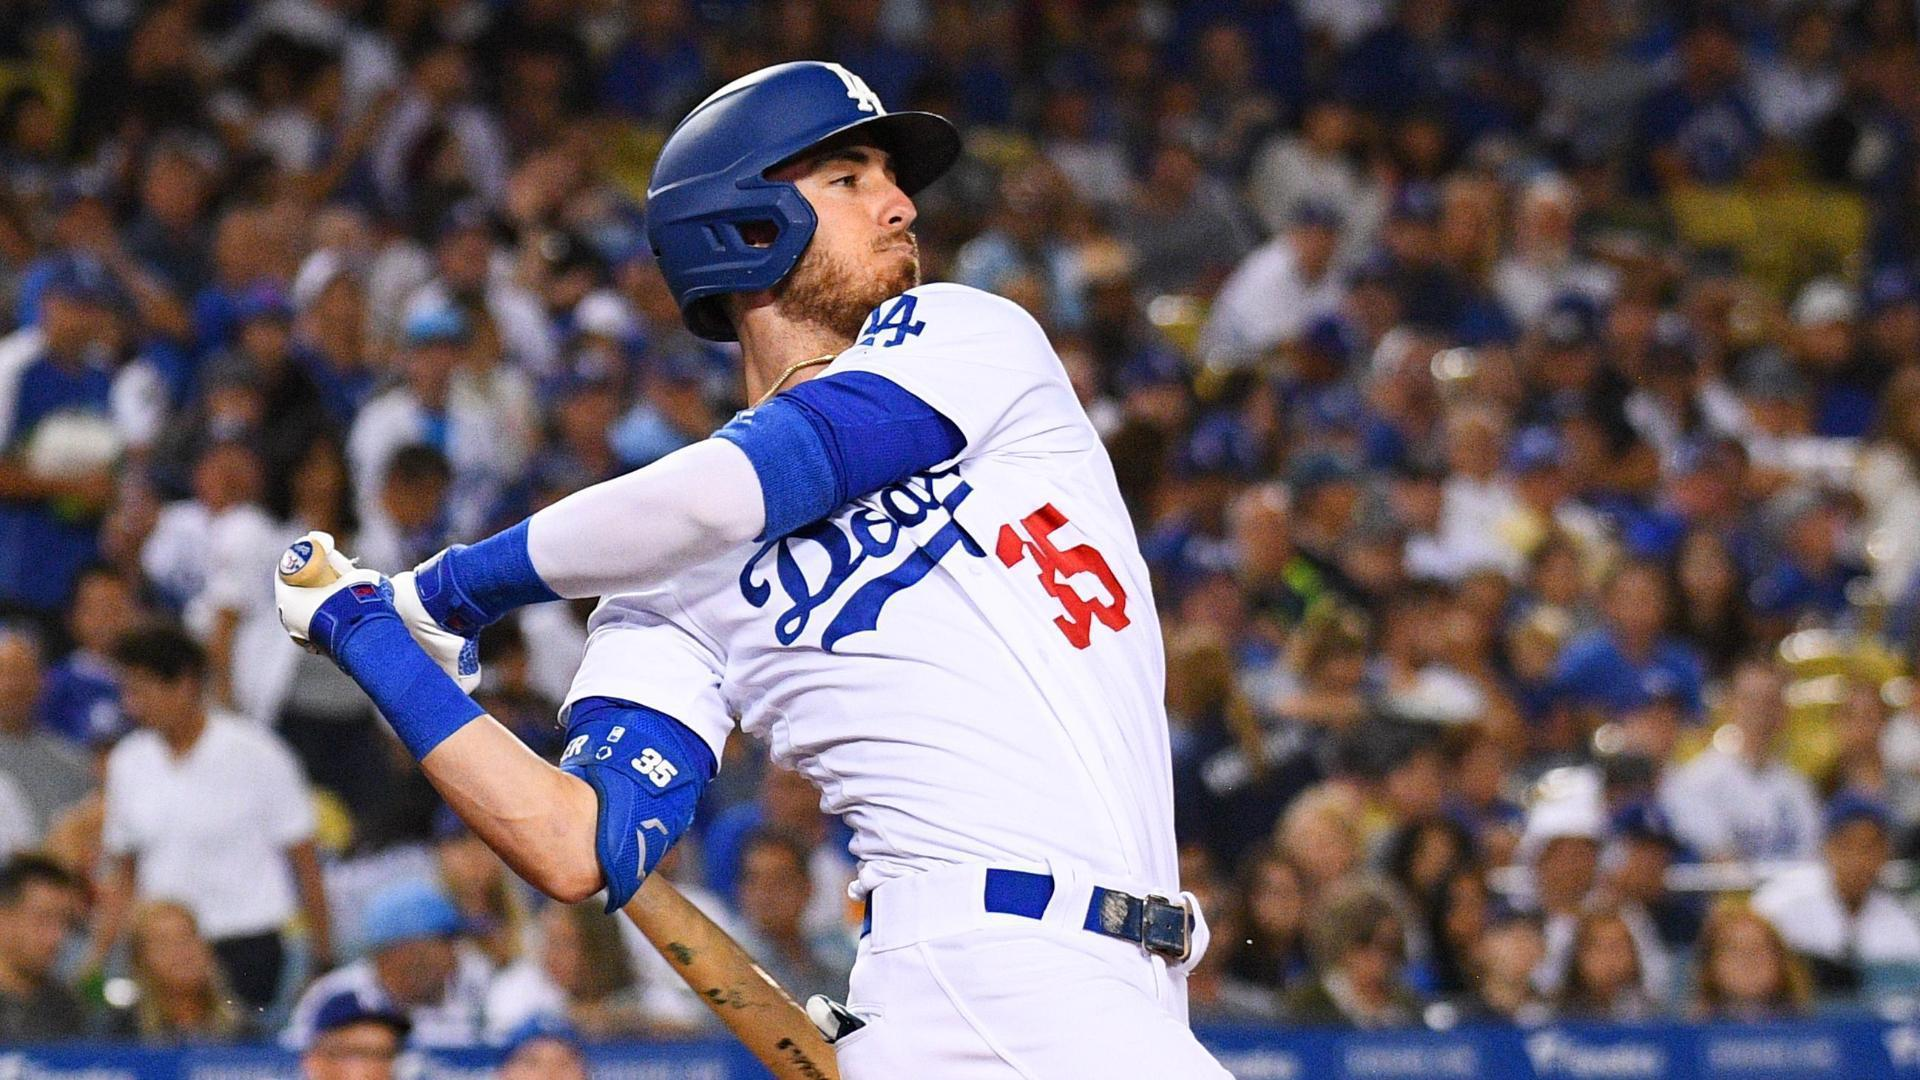 Why a .400 BA won't happen in a 60-game season